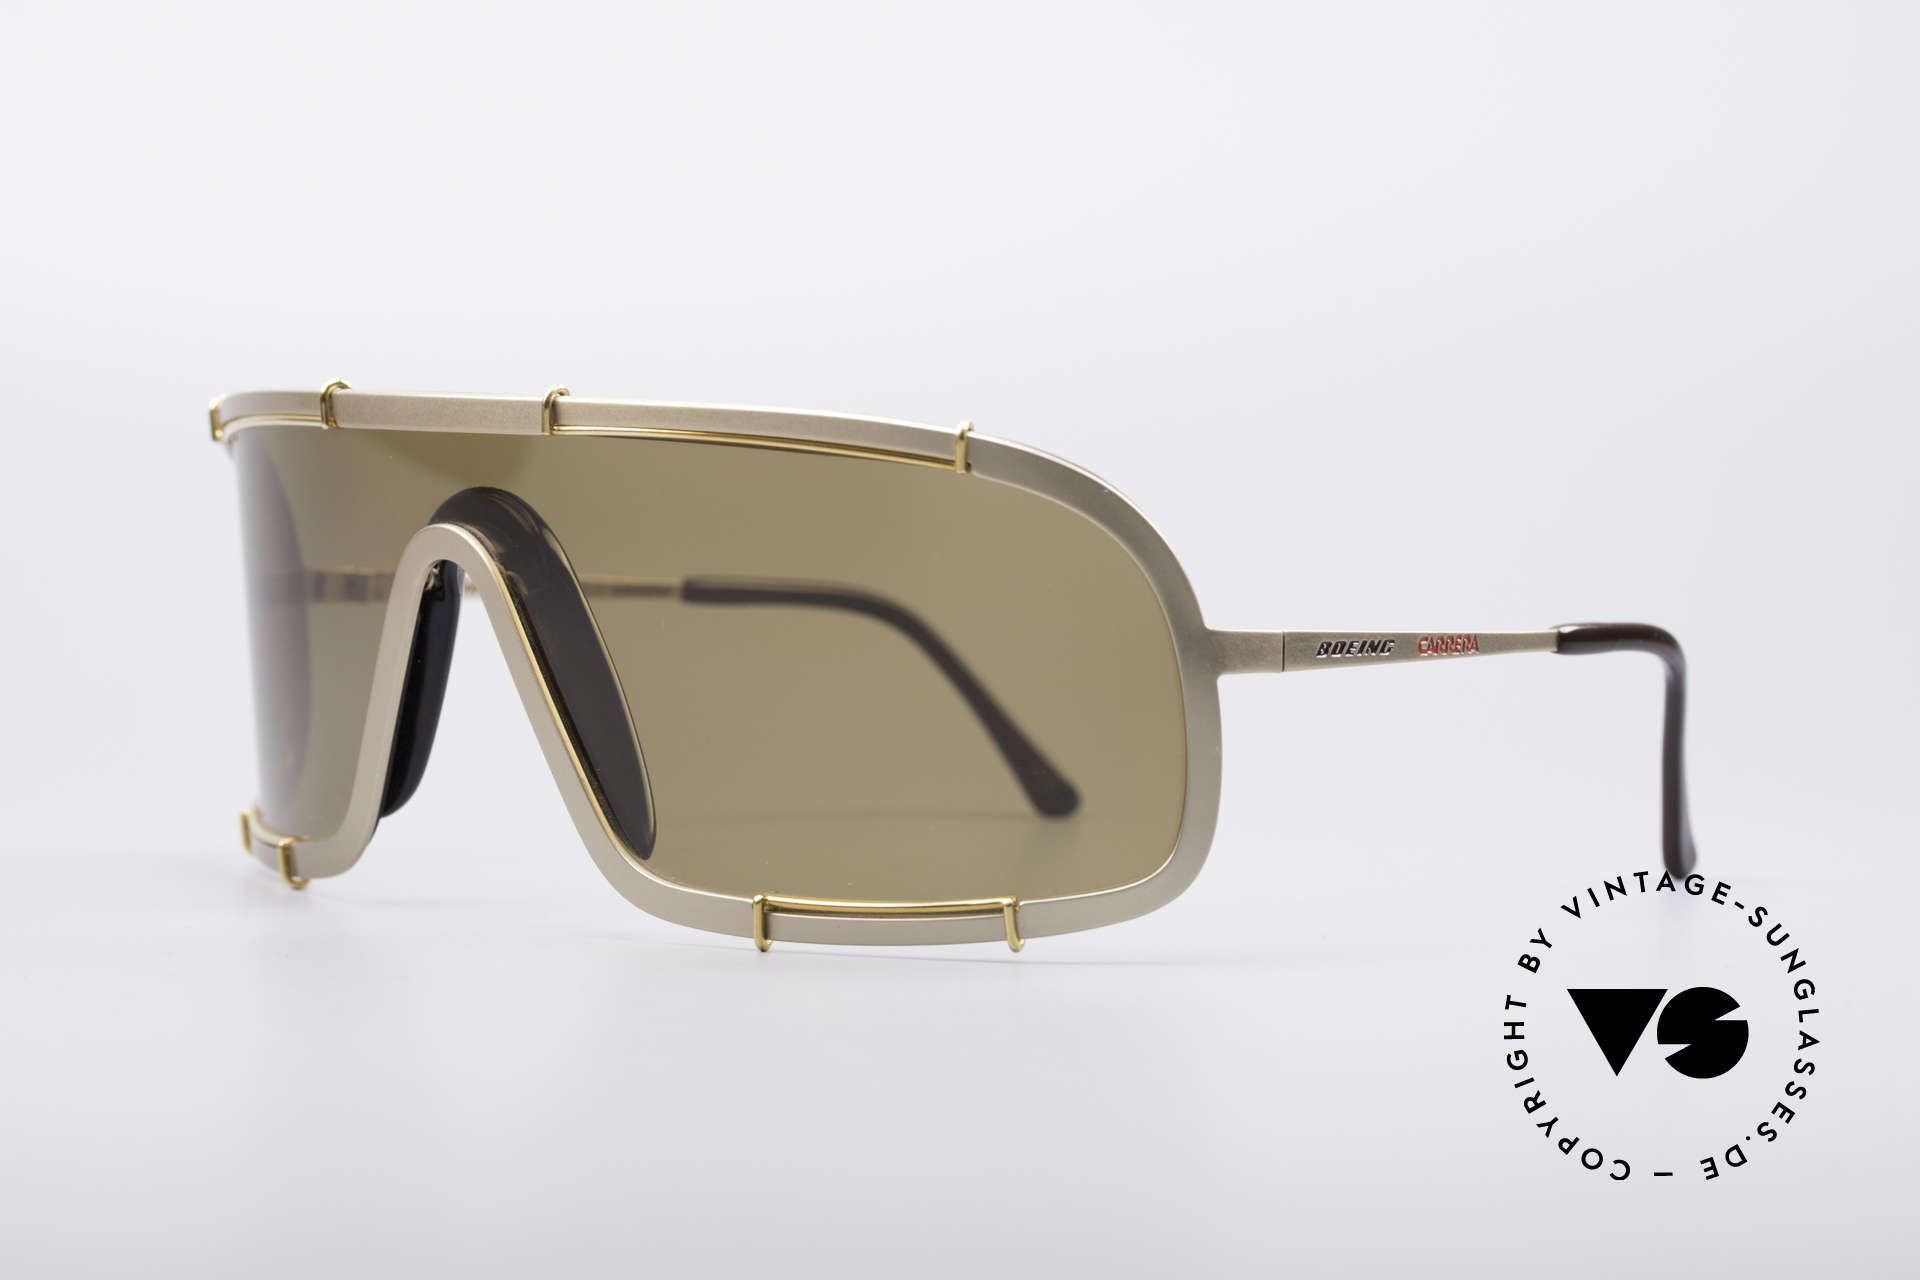 Boeing 5708 80's Luxury Pilots Shades, adjustable nose pads & gold-plated frame; true vintage, Made for Men